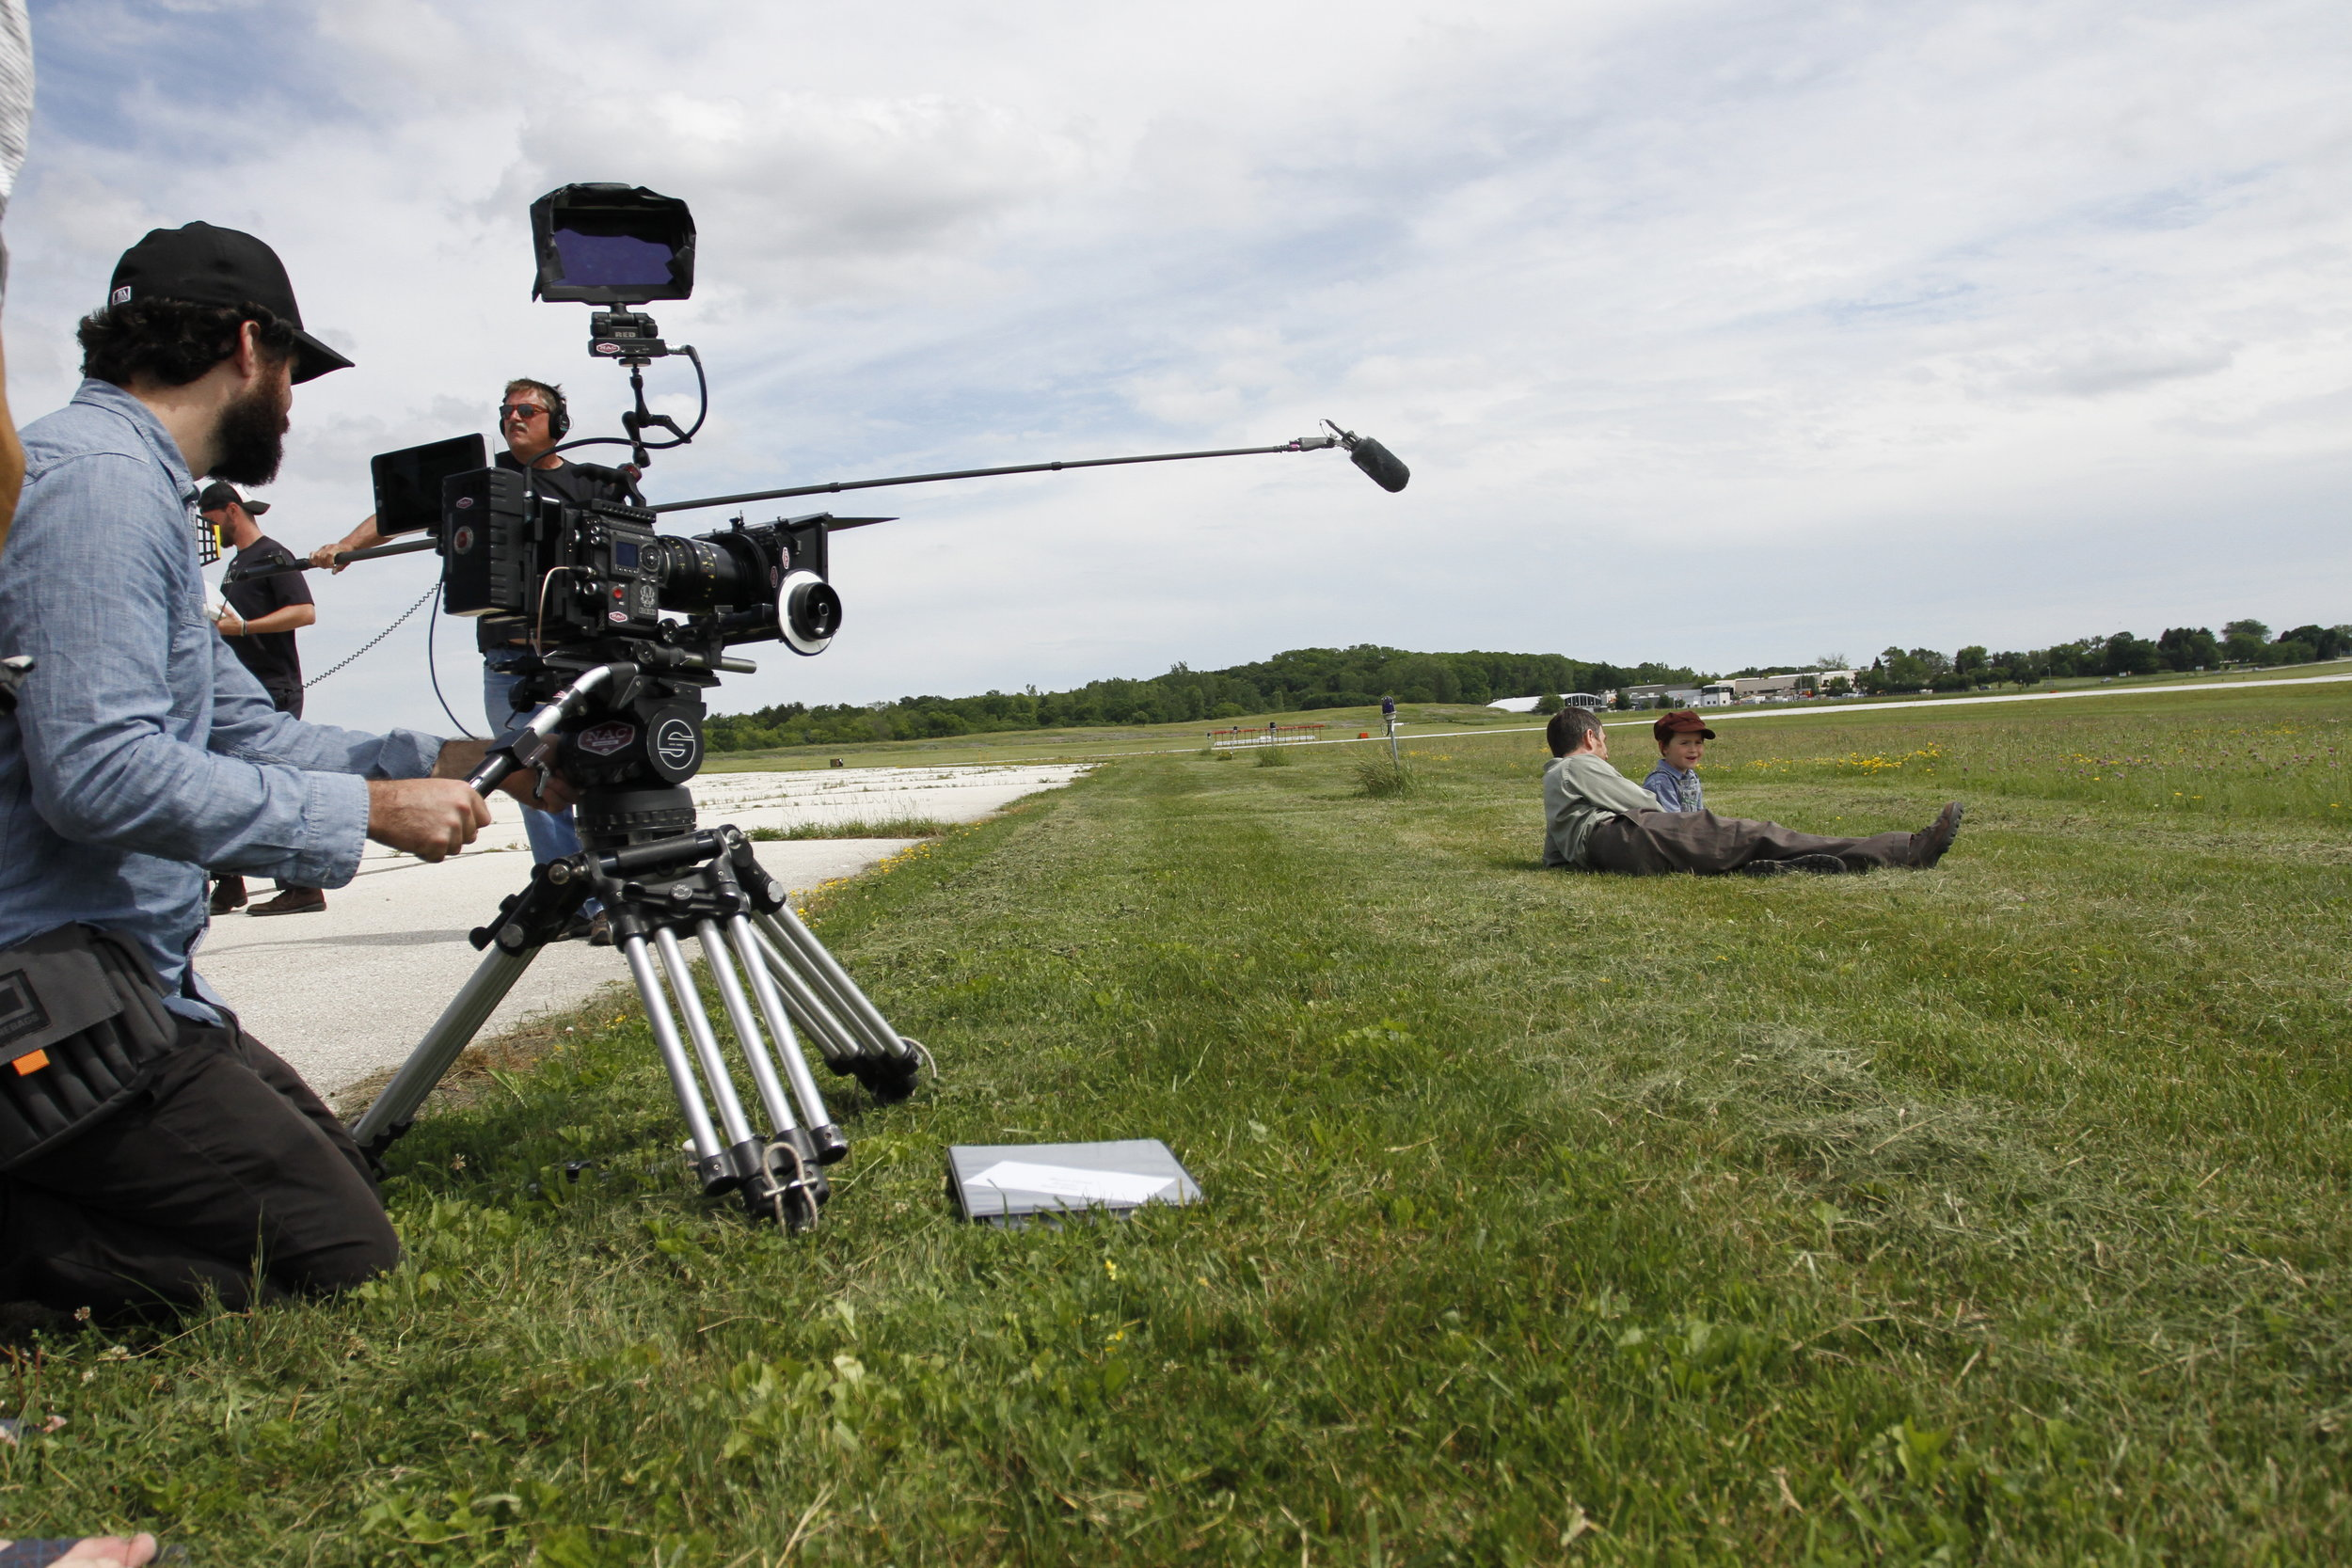 Filming a scene while the WWII plane flies above.